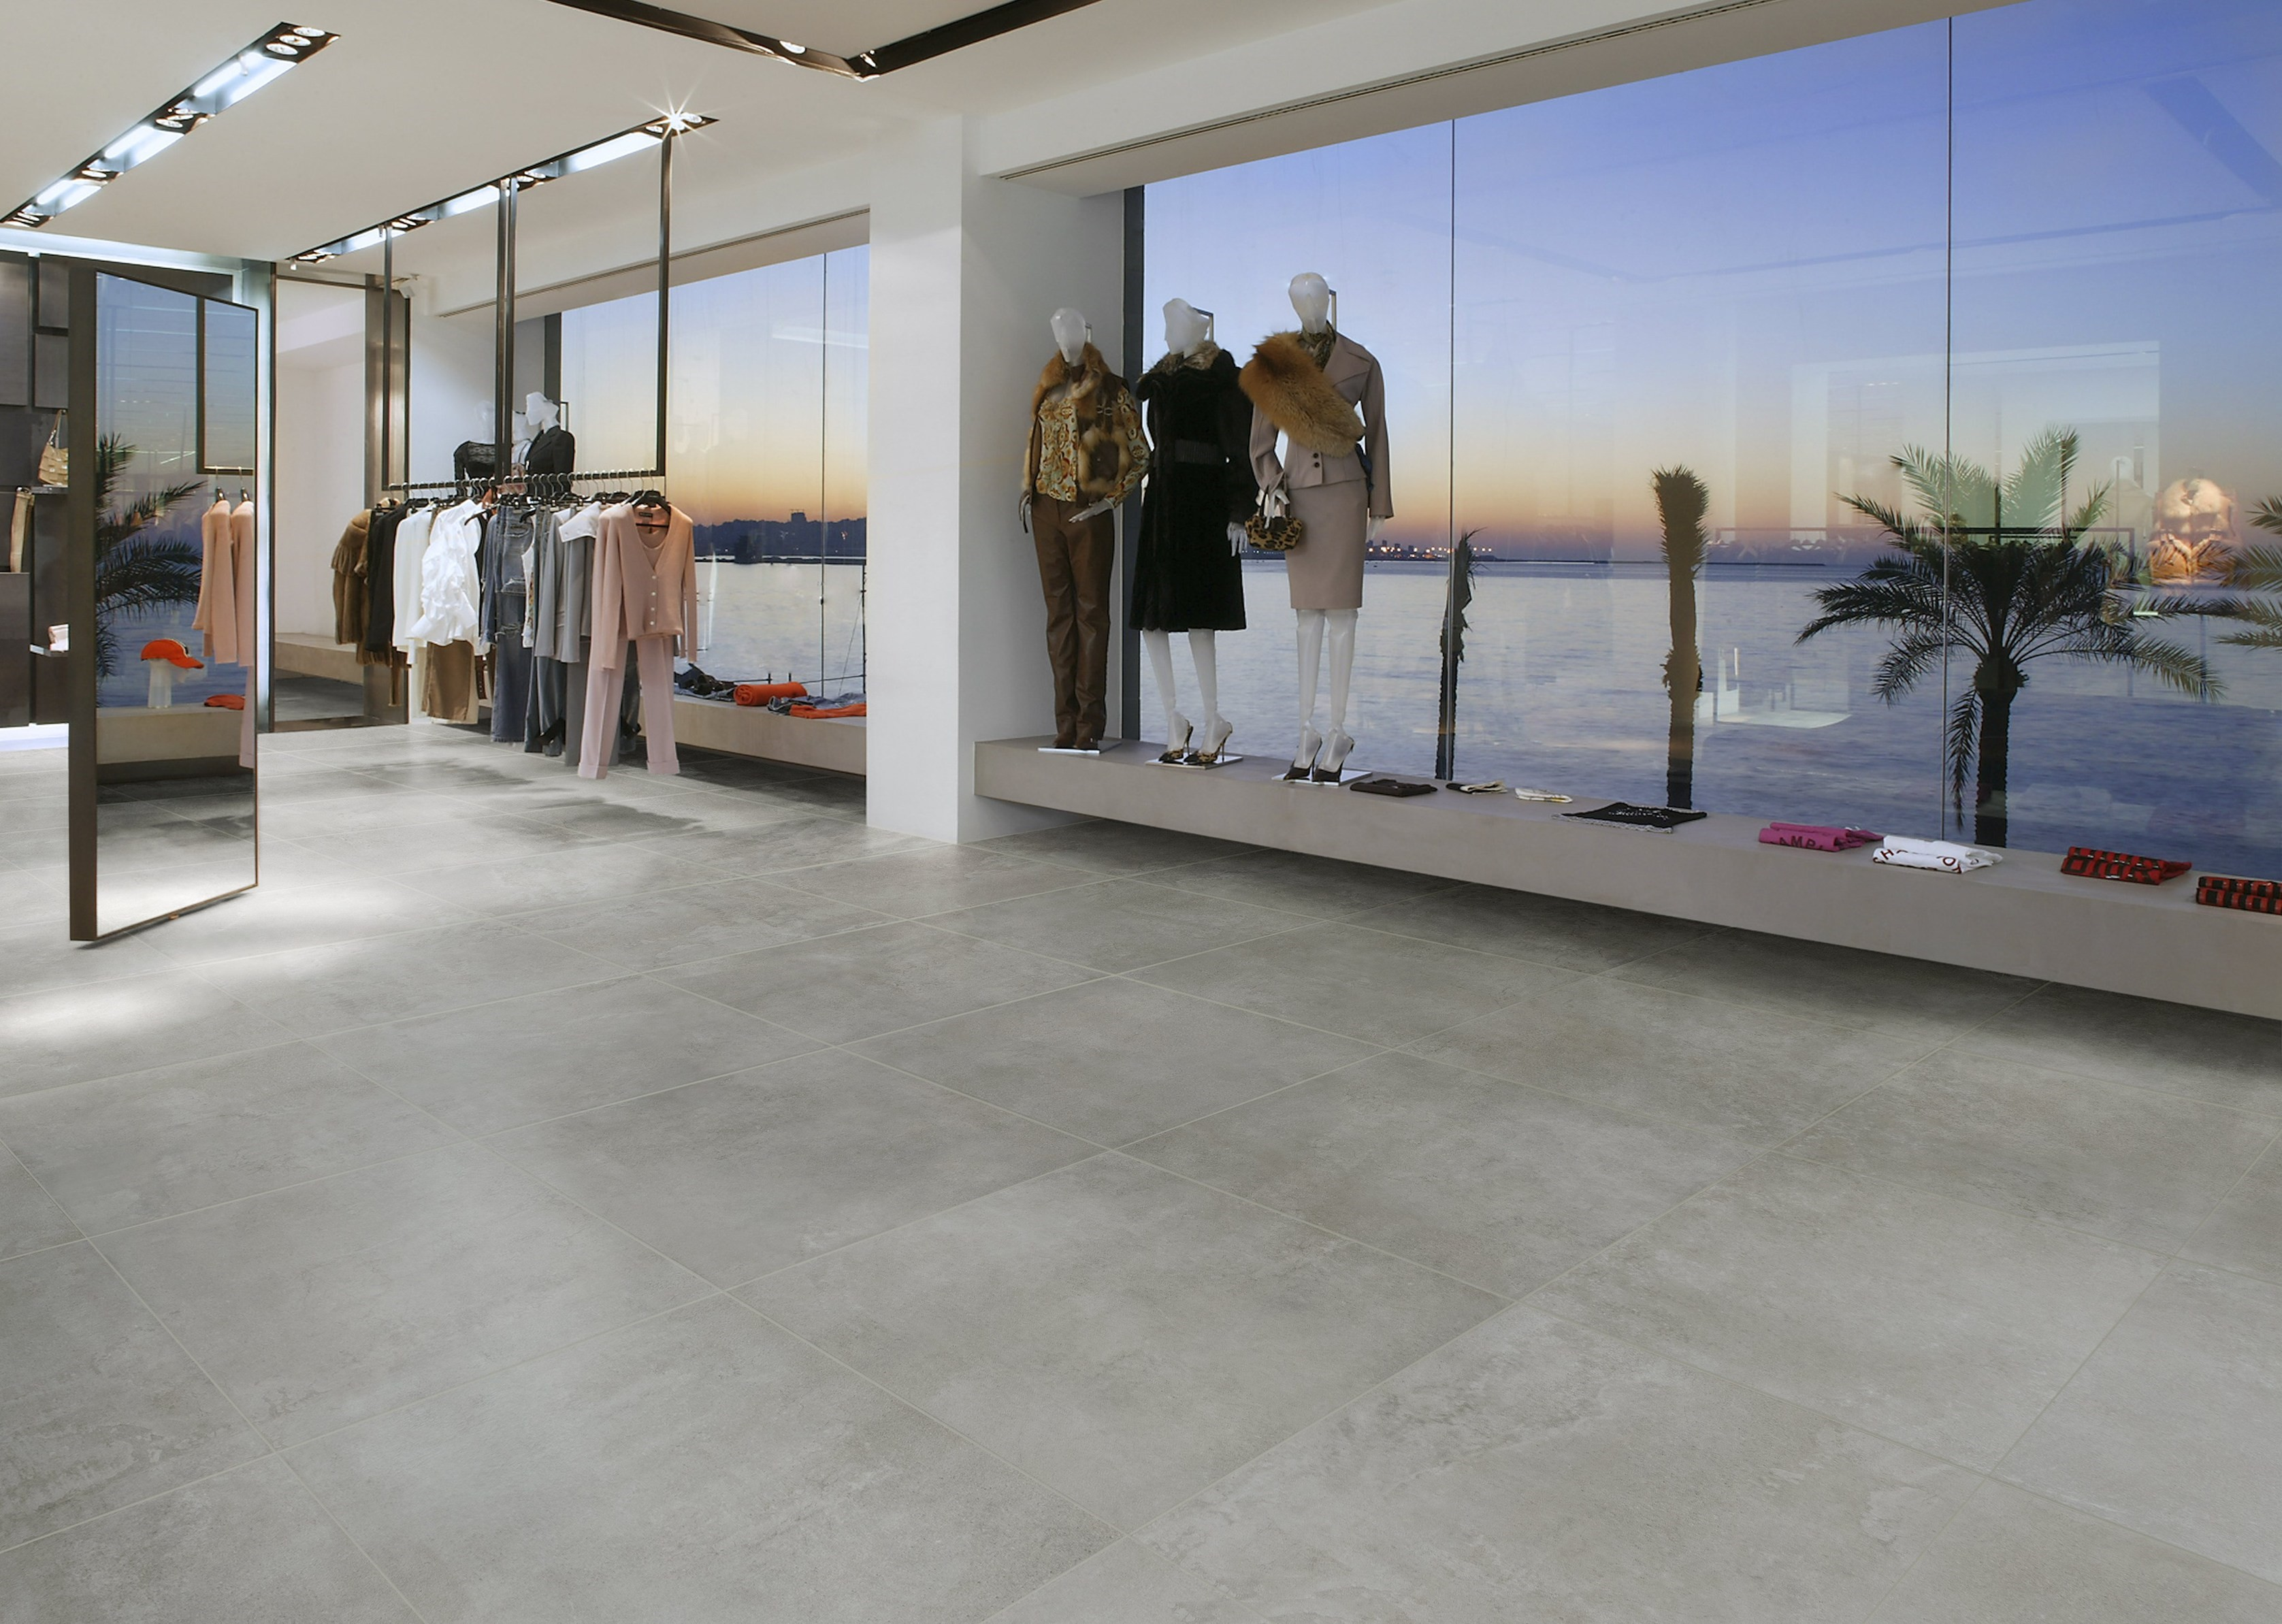 Carrelage contemporain aspect b ton urban life porto venere for Carrelage 90x90 beige